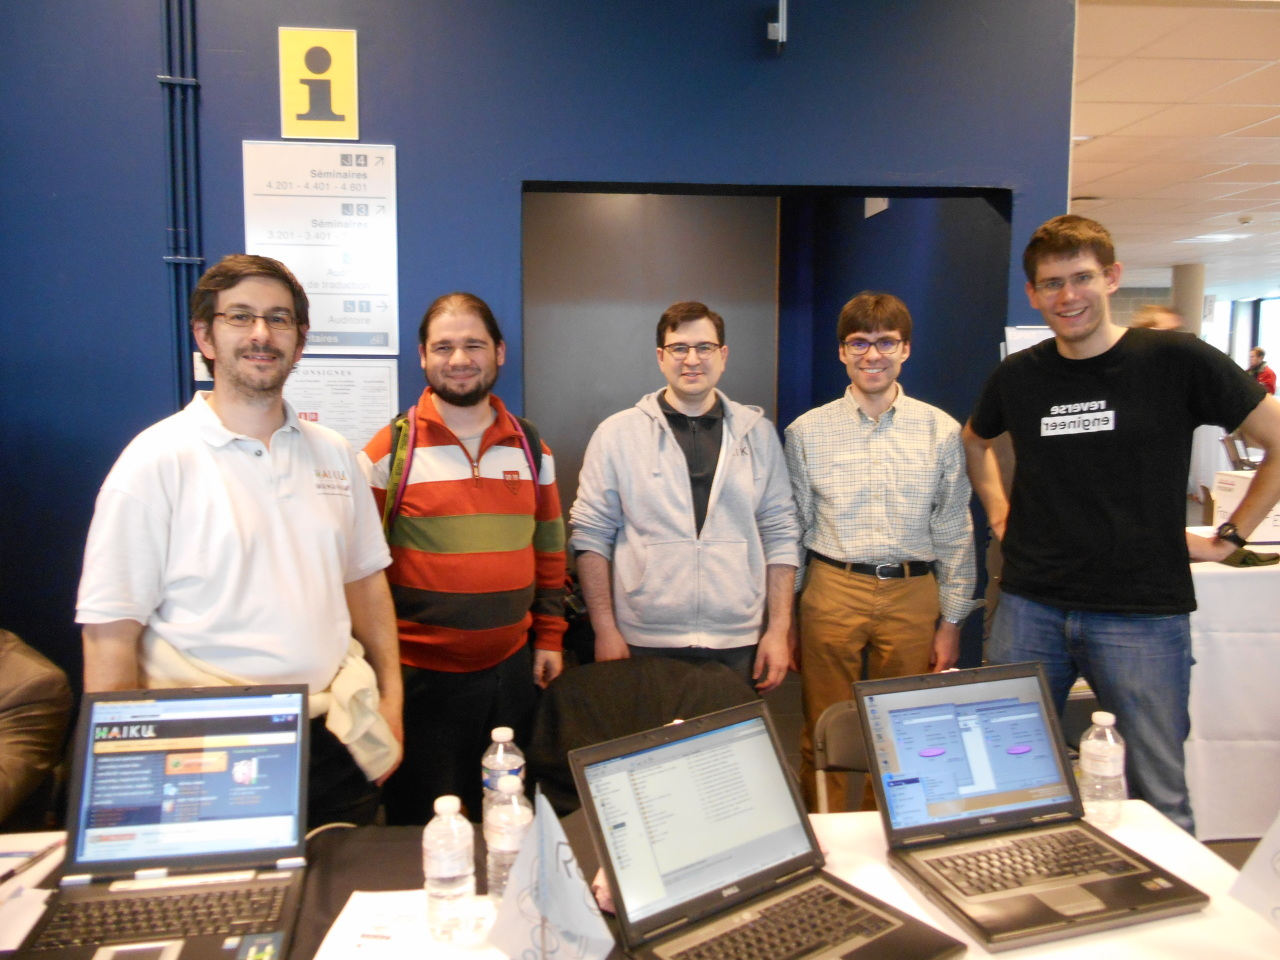 Haiku & ReactOS booth with the full teams